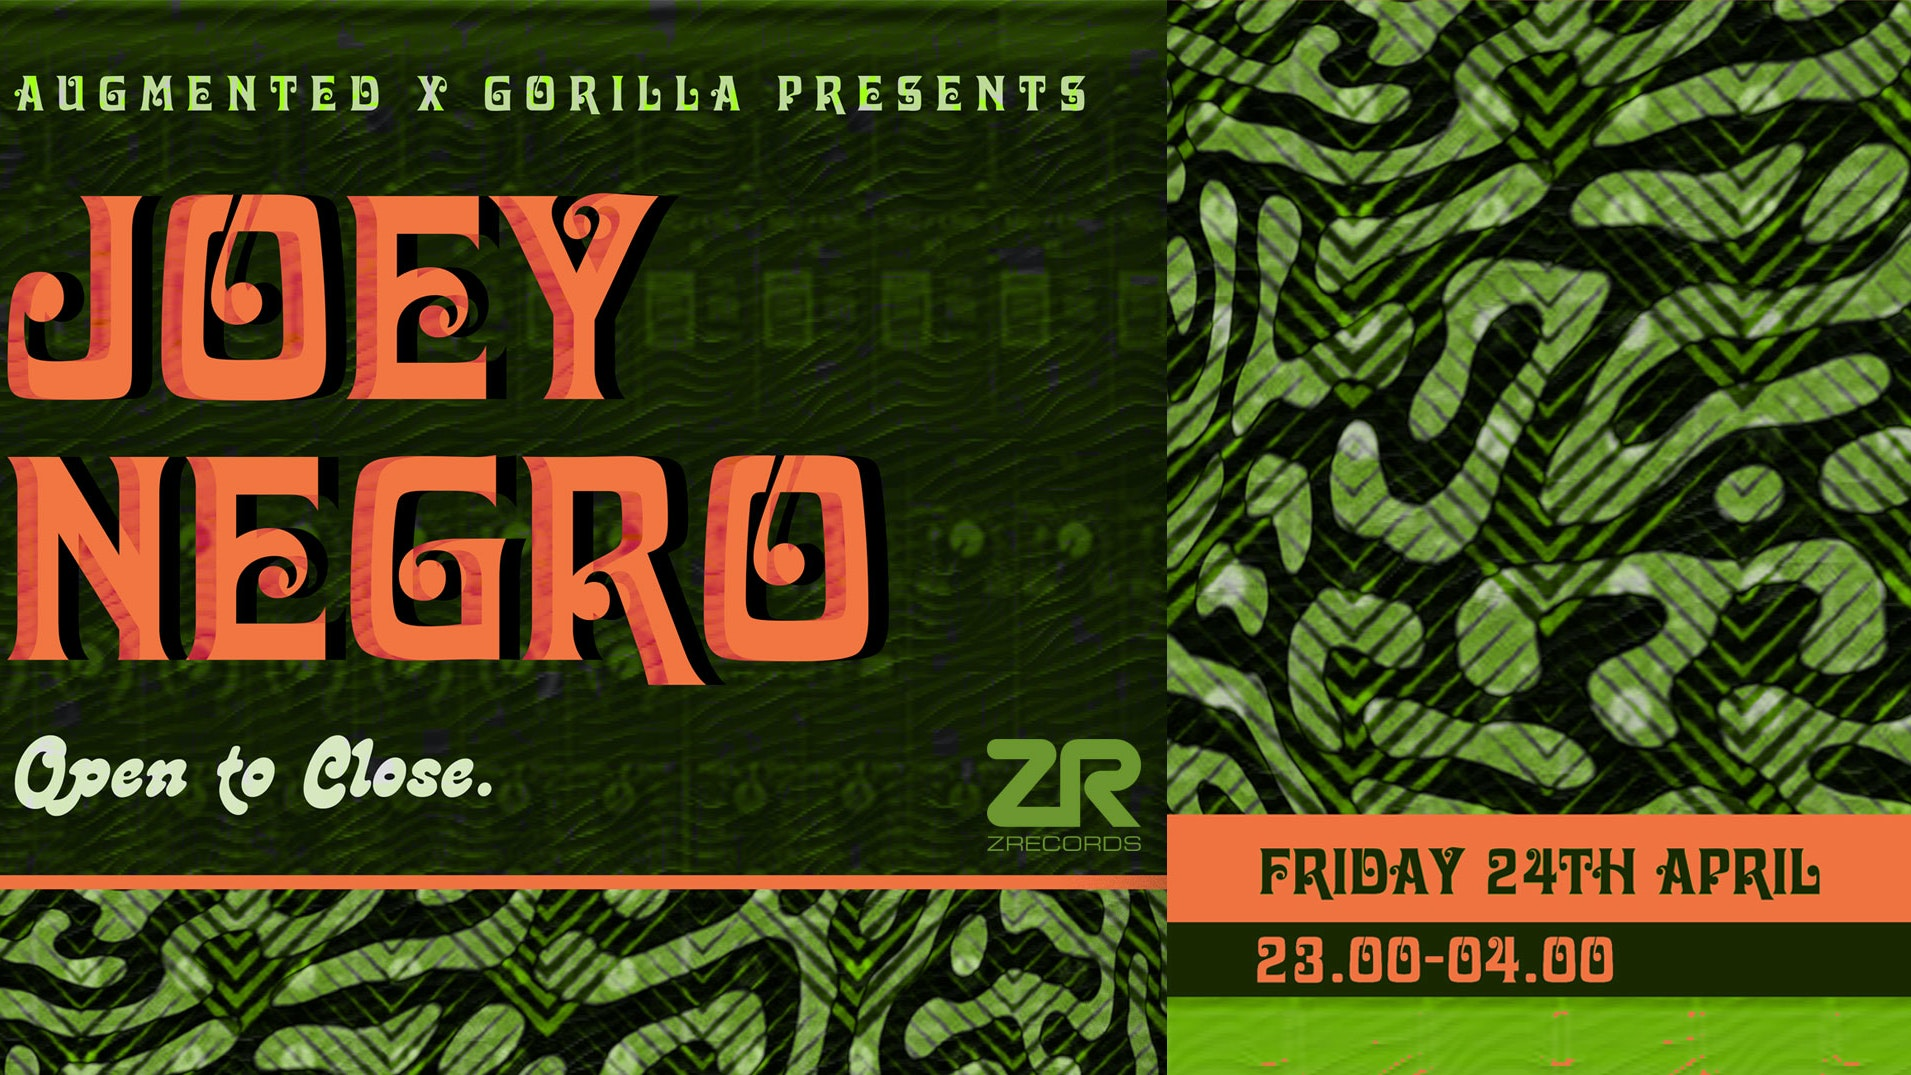 POSTPONED: Joey Negro – Open To Close